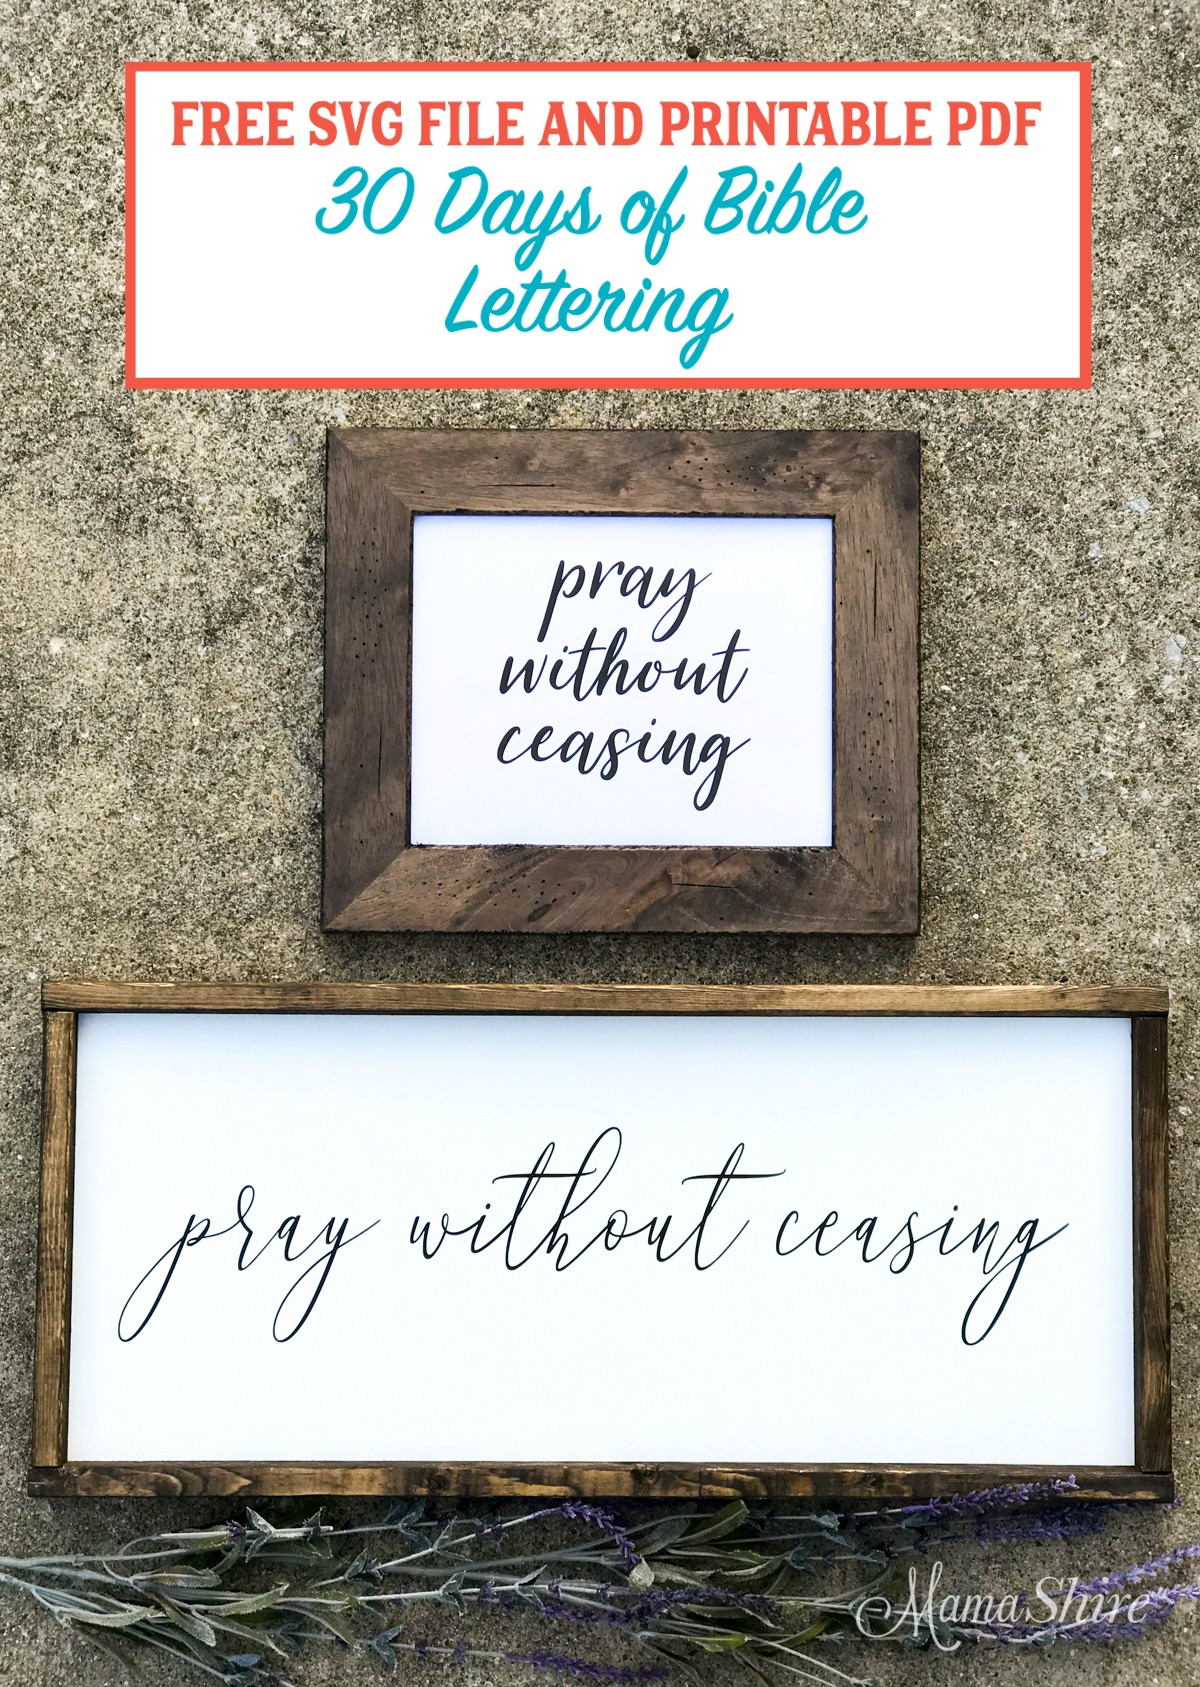 Pray without ceasing Free Files.